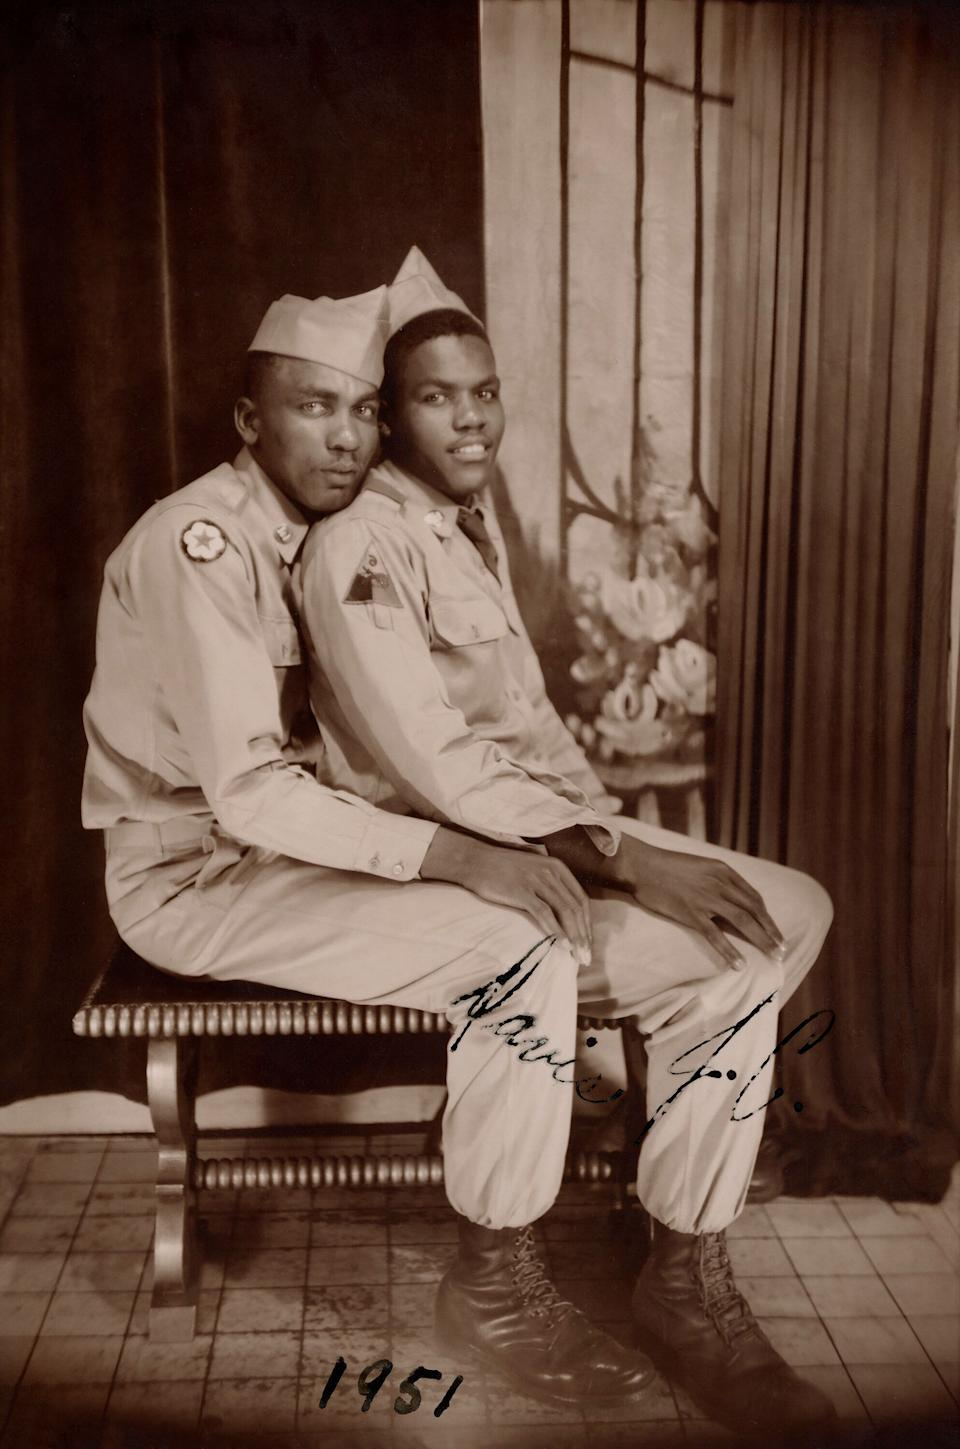 """""""We hope that our book will reinforce, renew or instill for the first time the belief that love is real and worth fighting for,"""" Nini and Treadwell told HuffPost. This photois labeled as""""Davis and J.C."""" and is believed to have been taken in 1951. (Photo: Courtesy of the Nini-Treadwell Collection © """"Loving"""" by 5 Continents Editions)"""